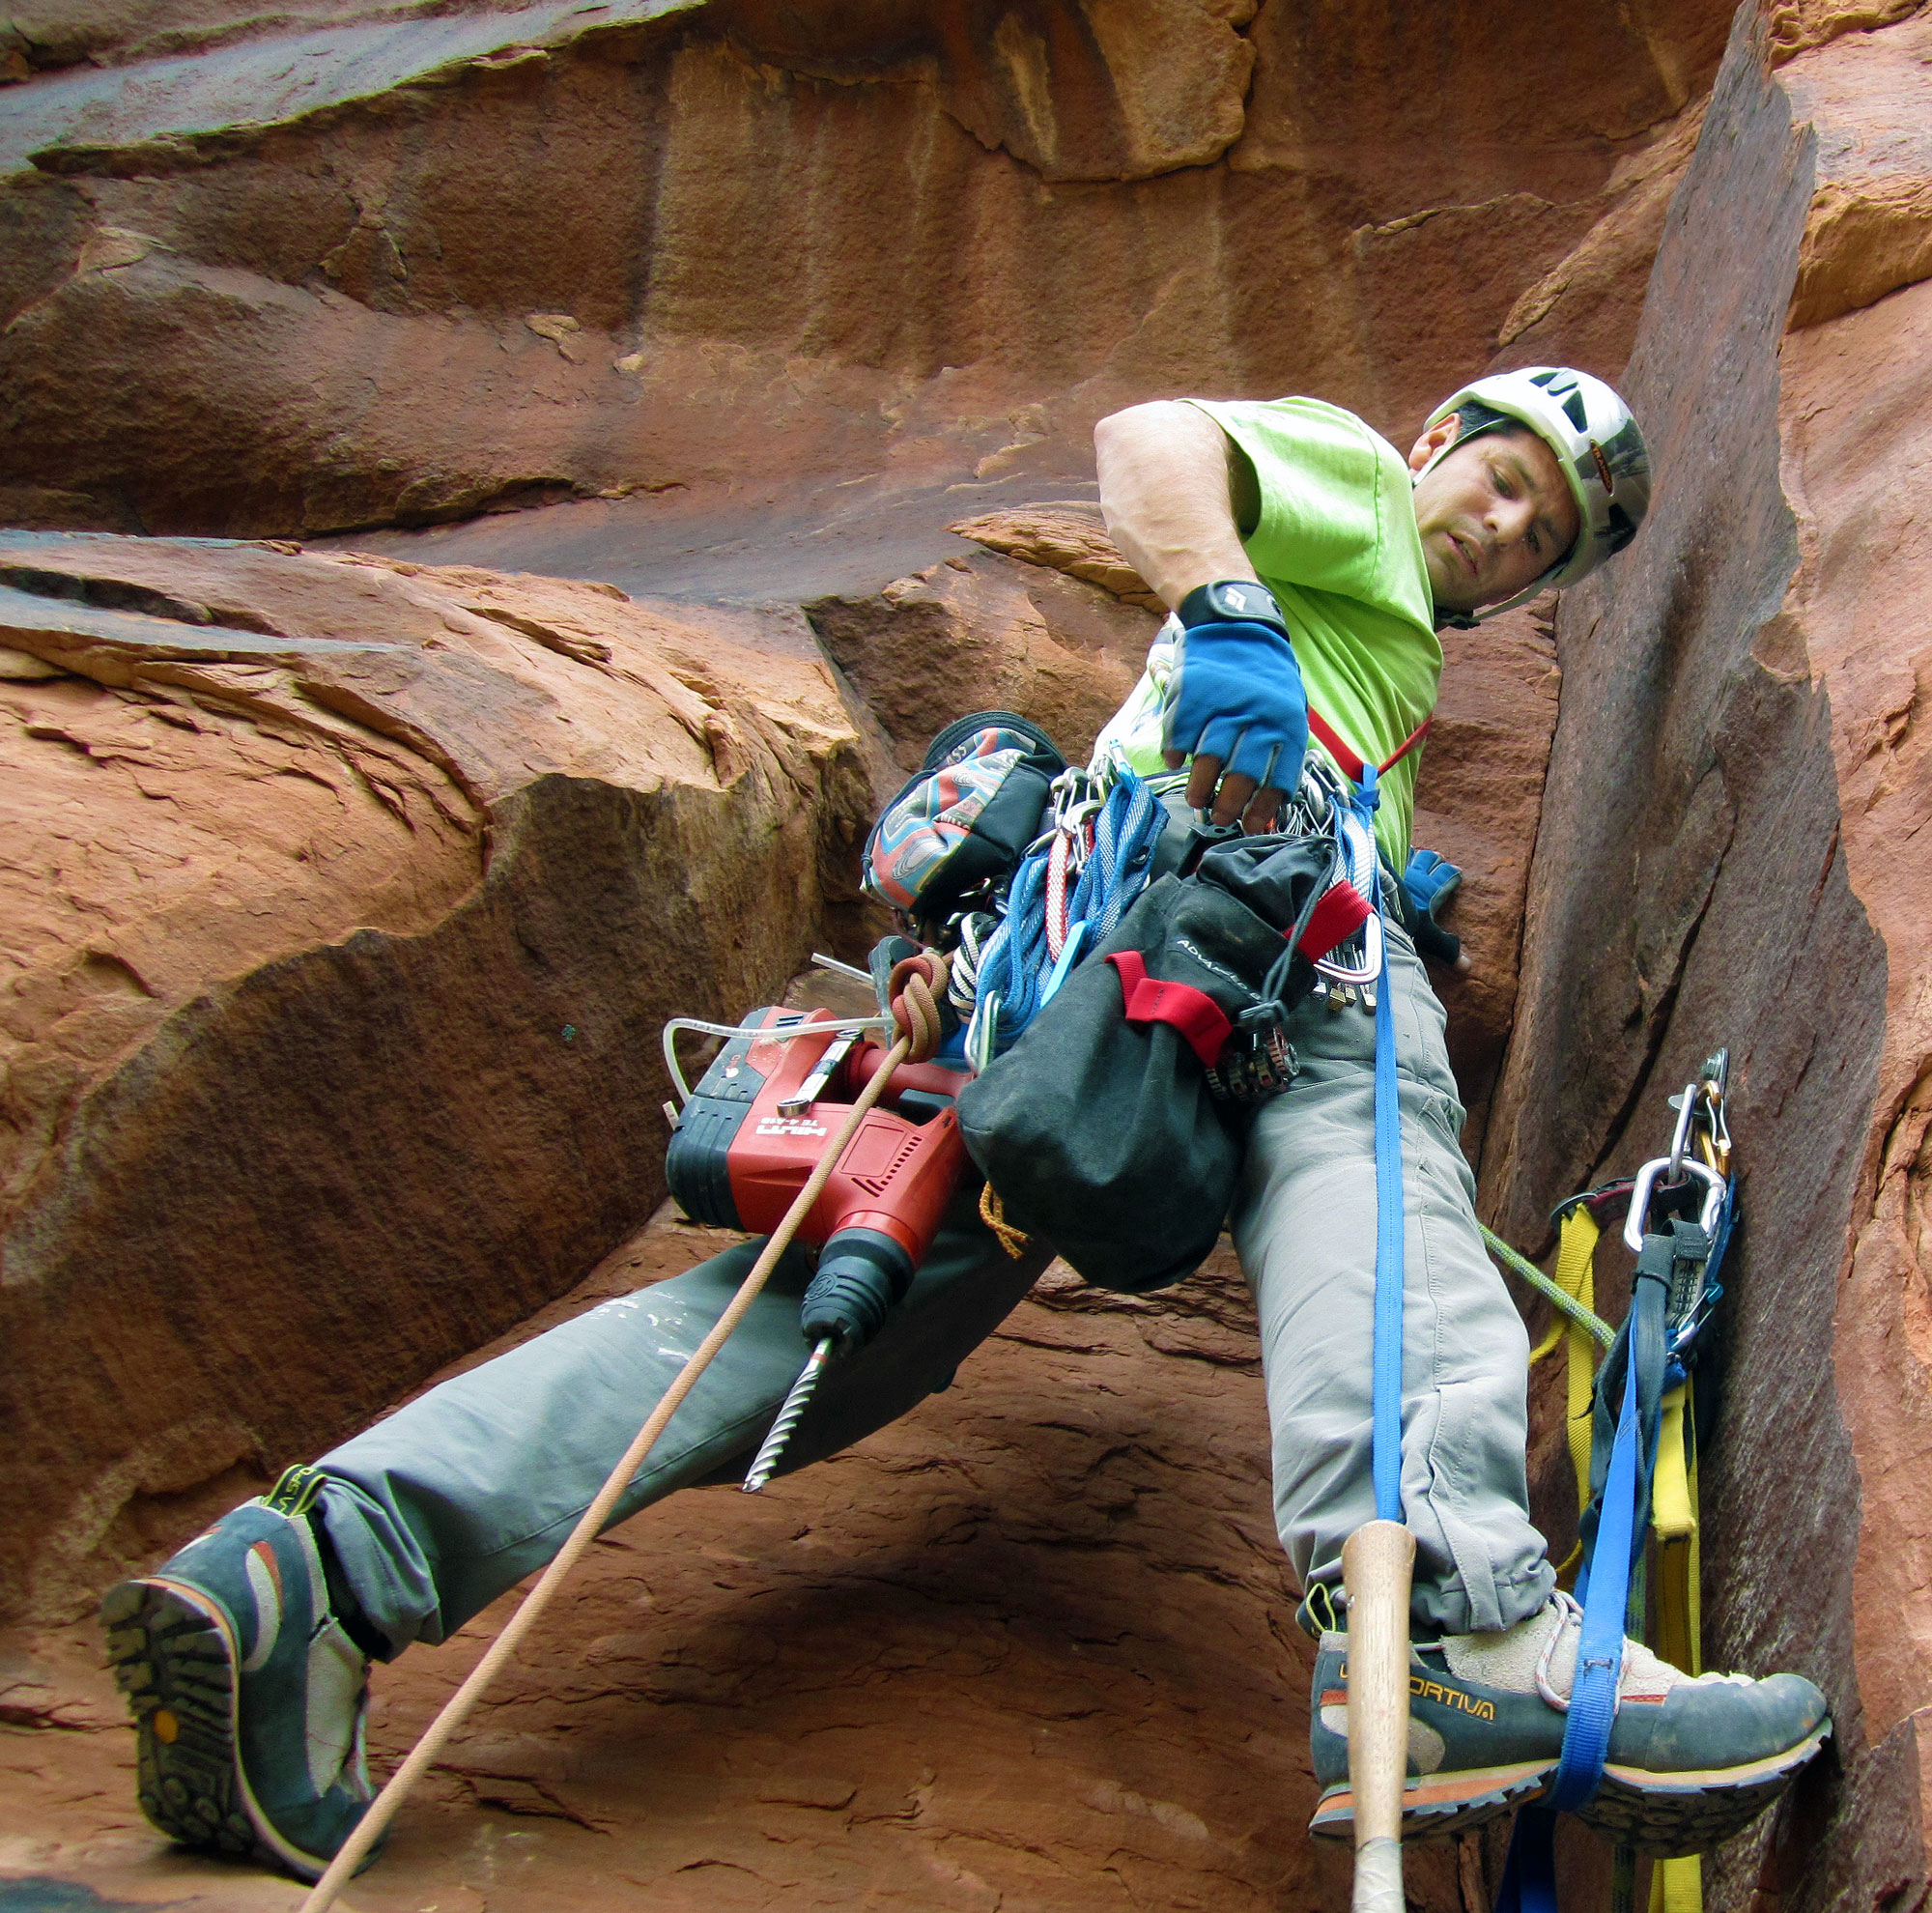 Marcus works a new route at Falcon Hatch, Utah. Photo: Marcus Garcia collection.